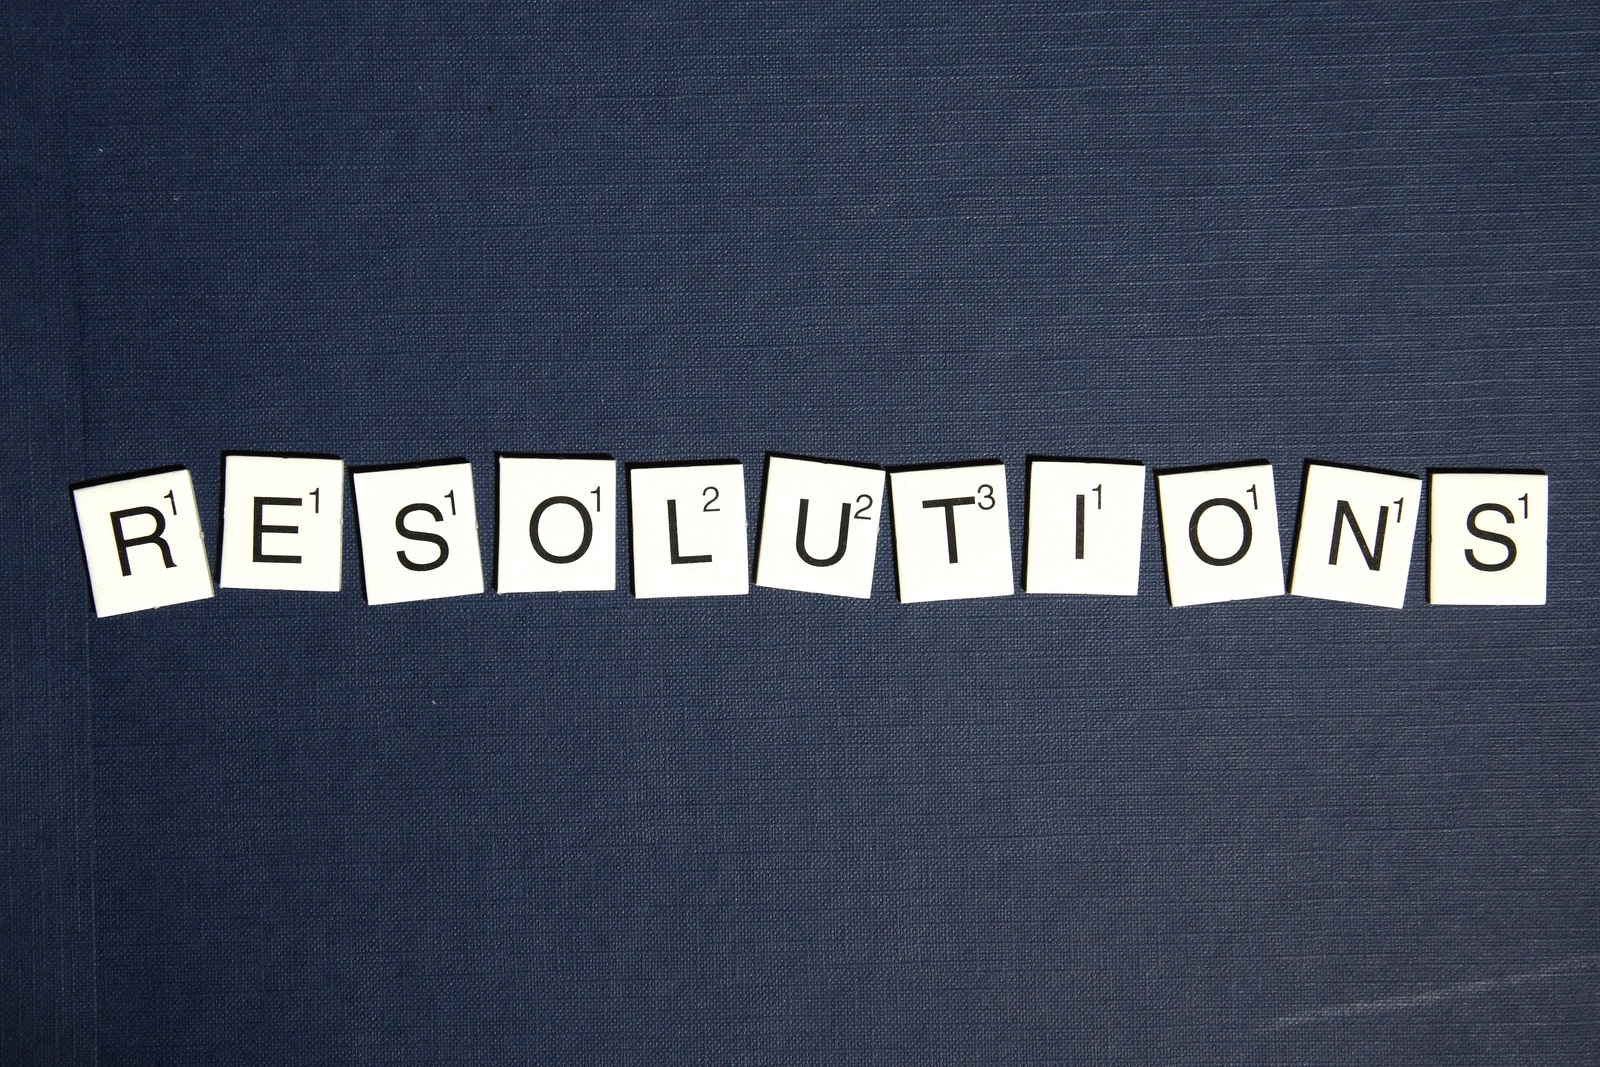 resolutions in scrabble letters